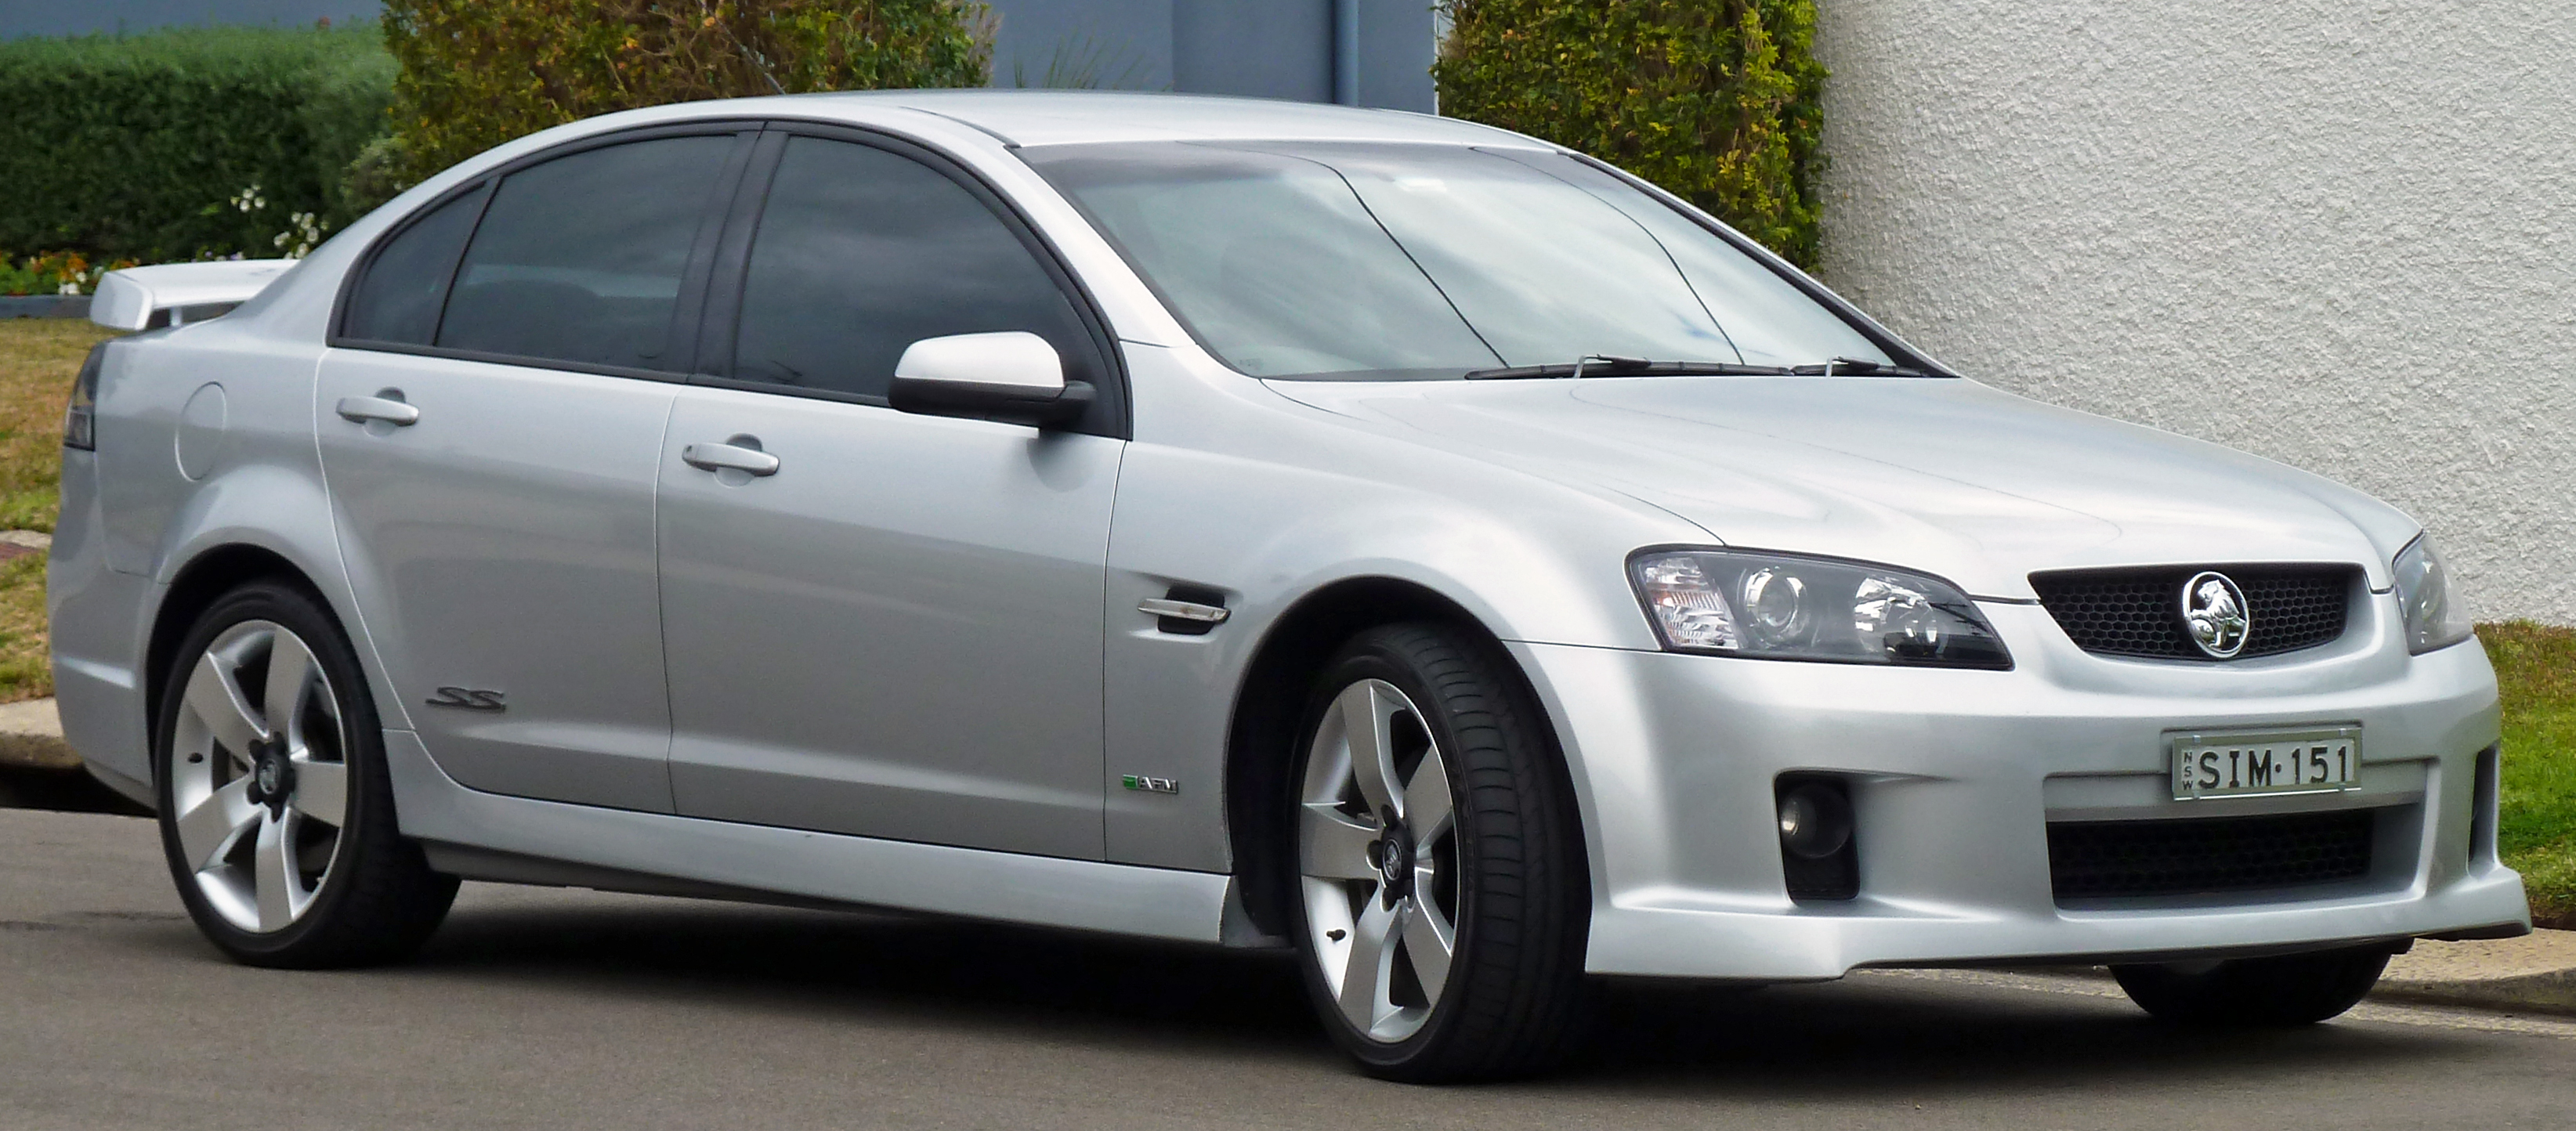 holden commodore (vt) 2006 models #4